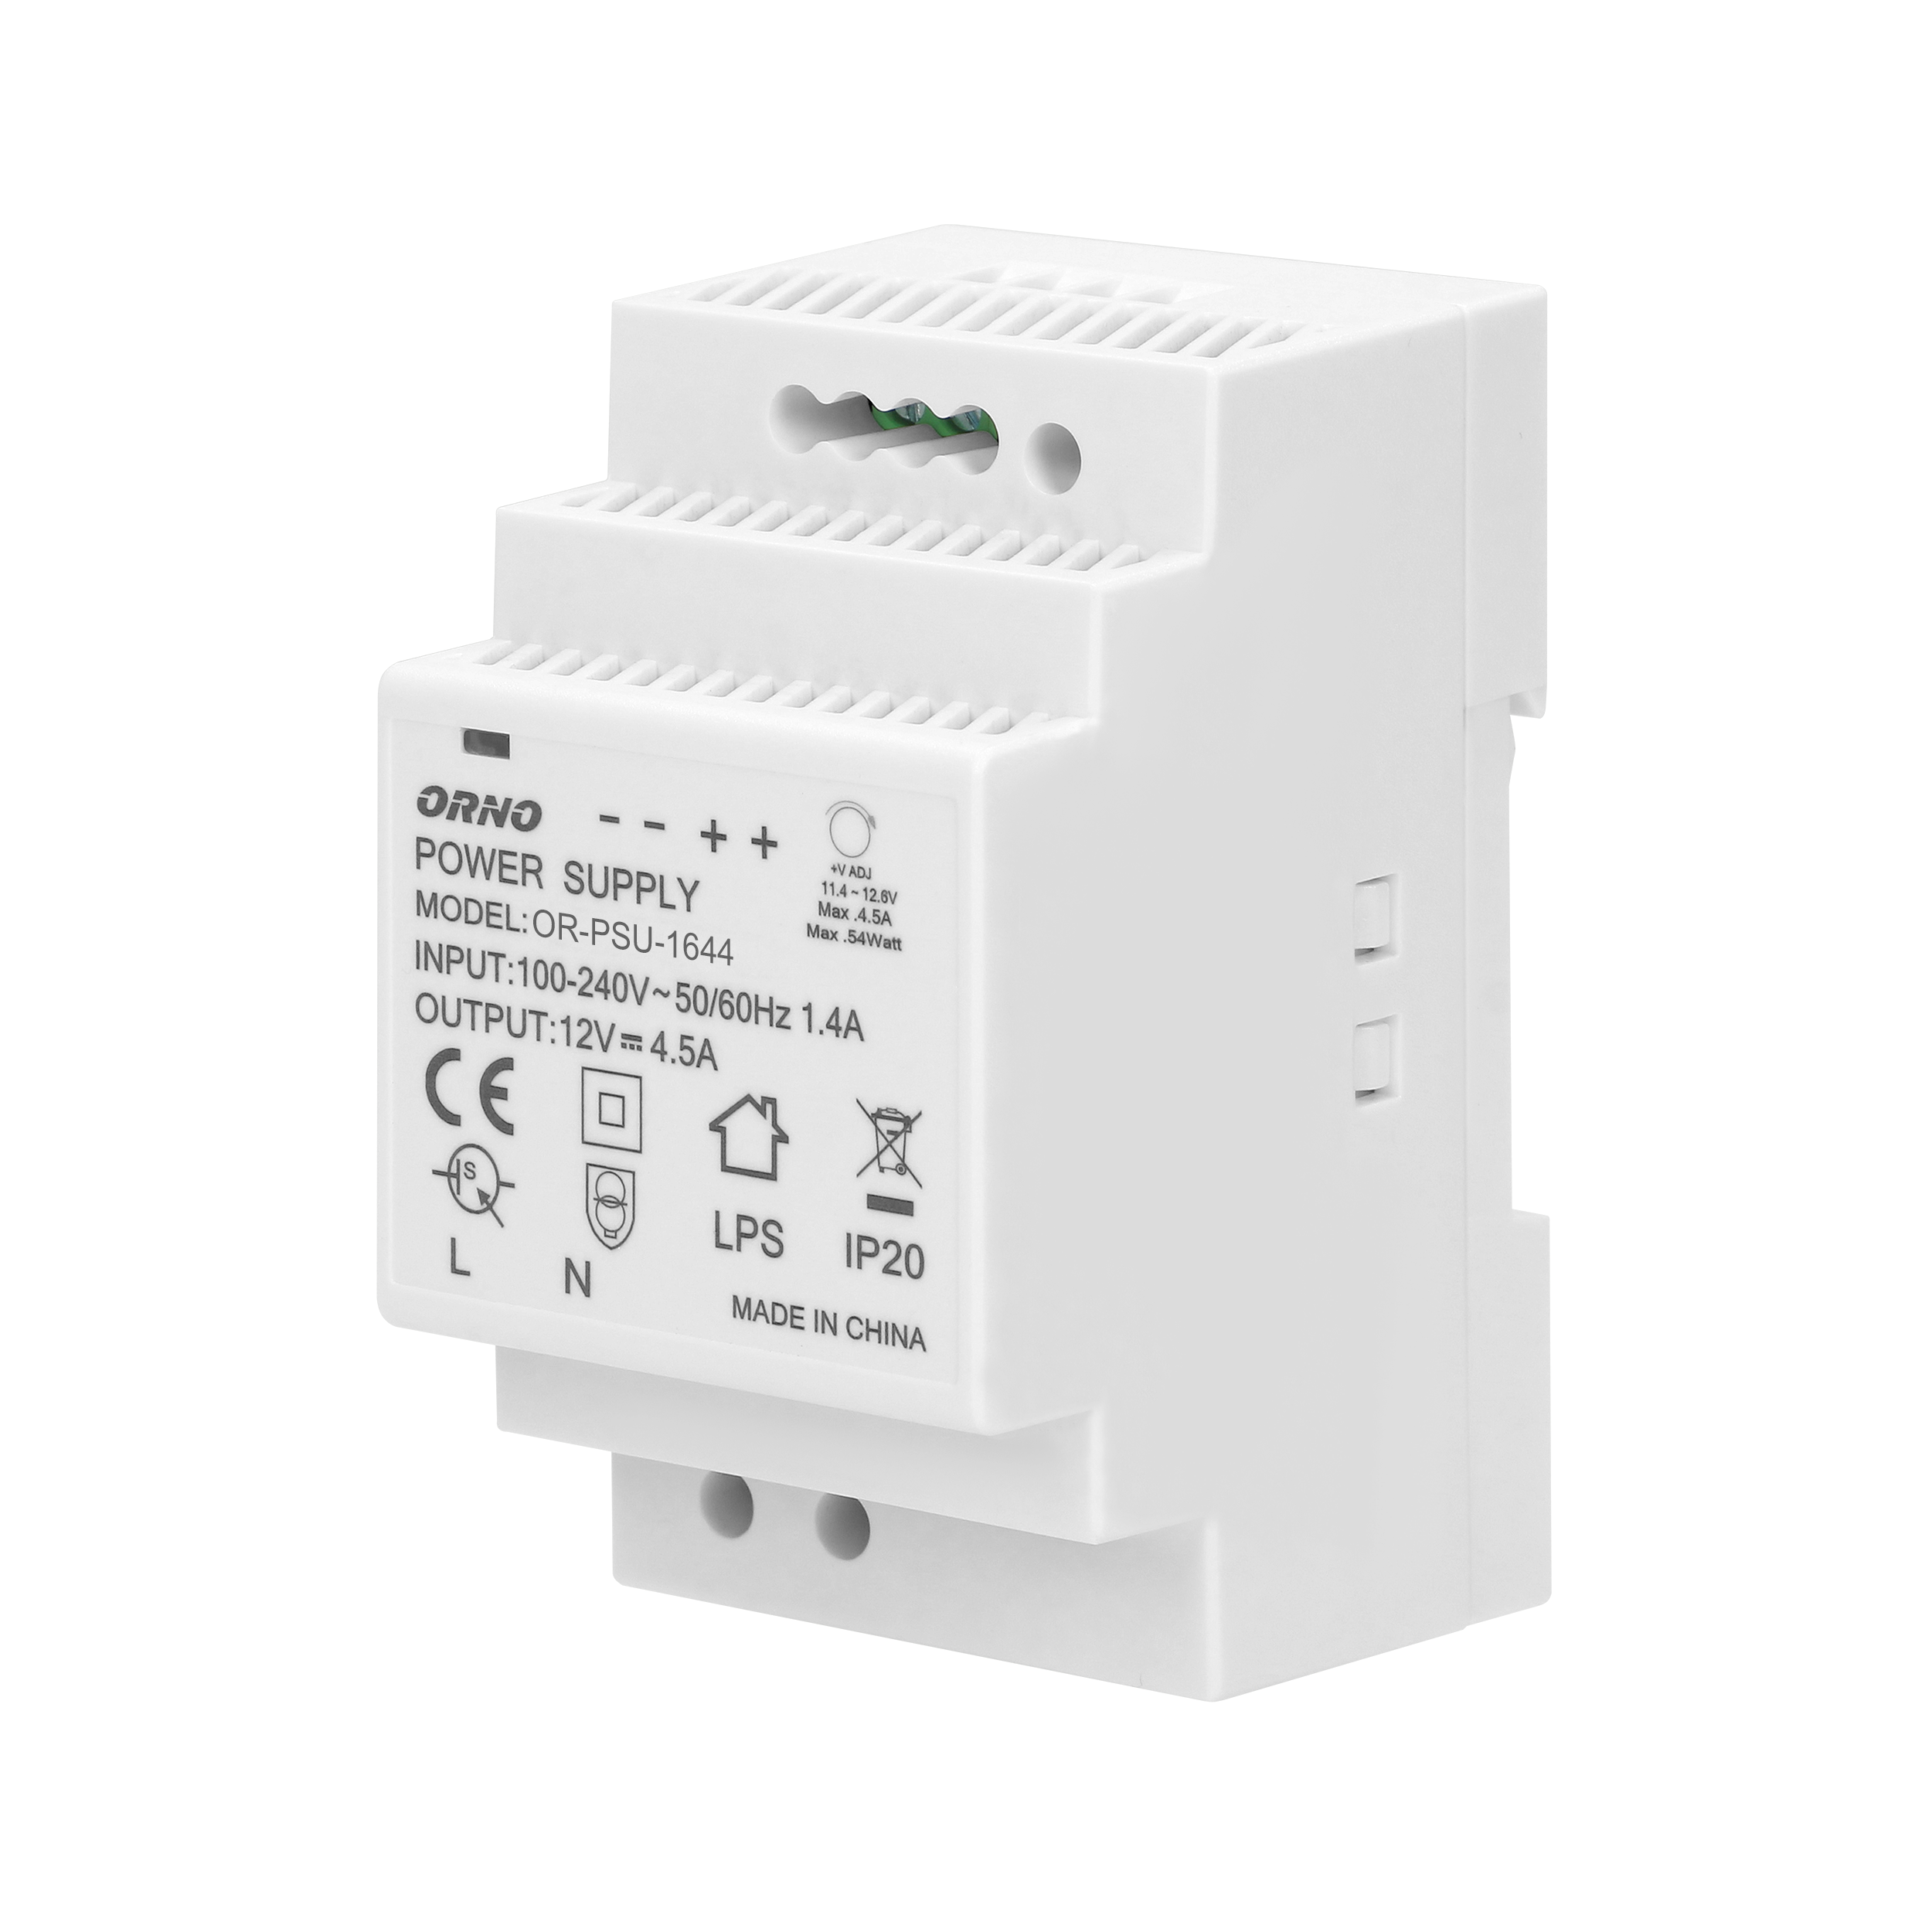 DIN rail power adaptor 12V DC 4.5A, 54W, width: 3 units